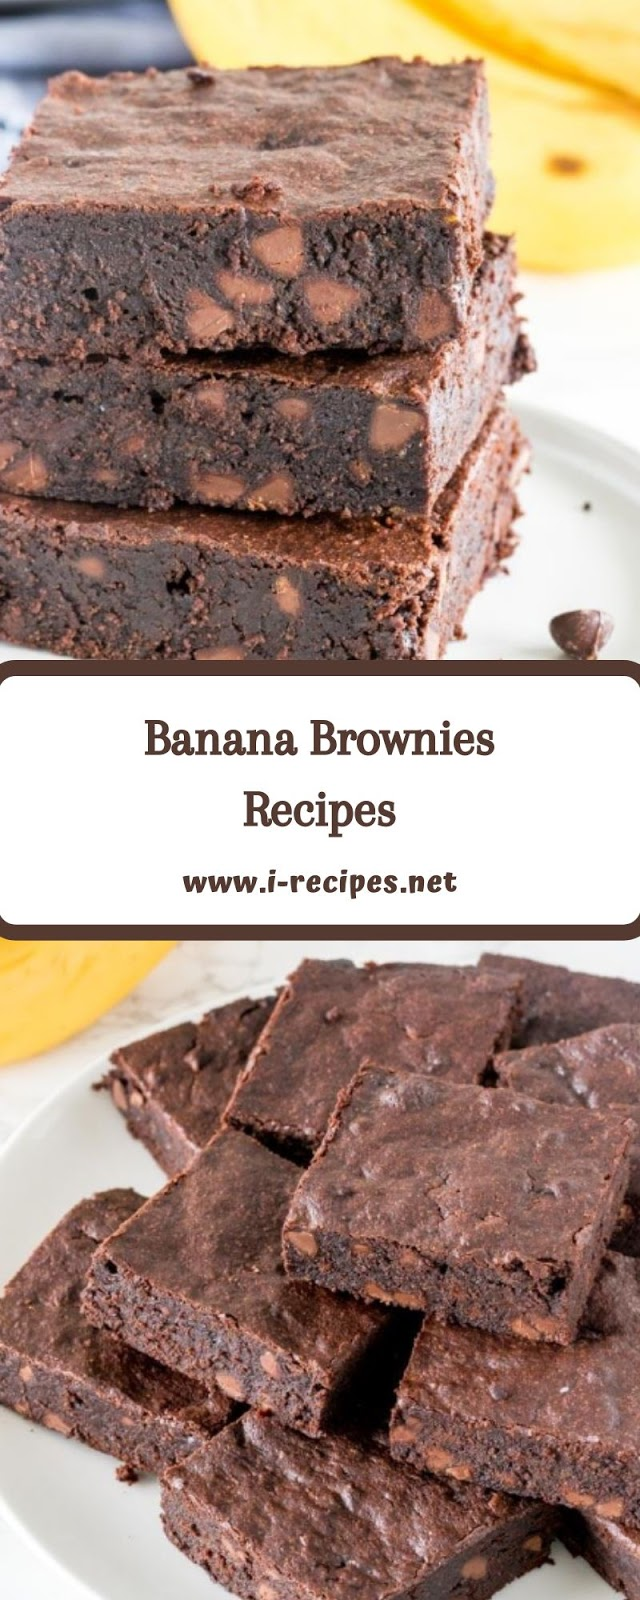 Banana Brownies Recipes